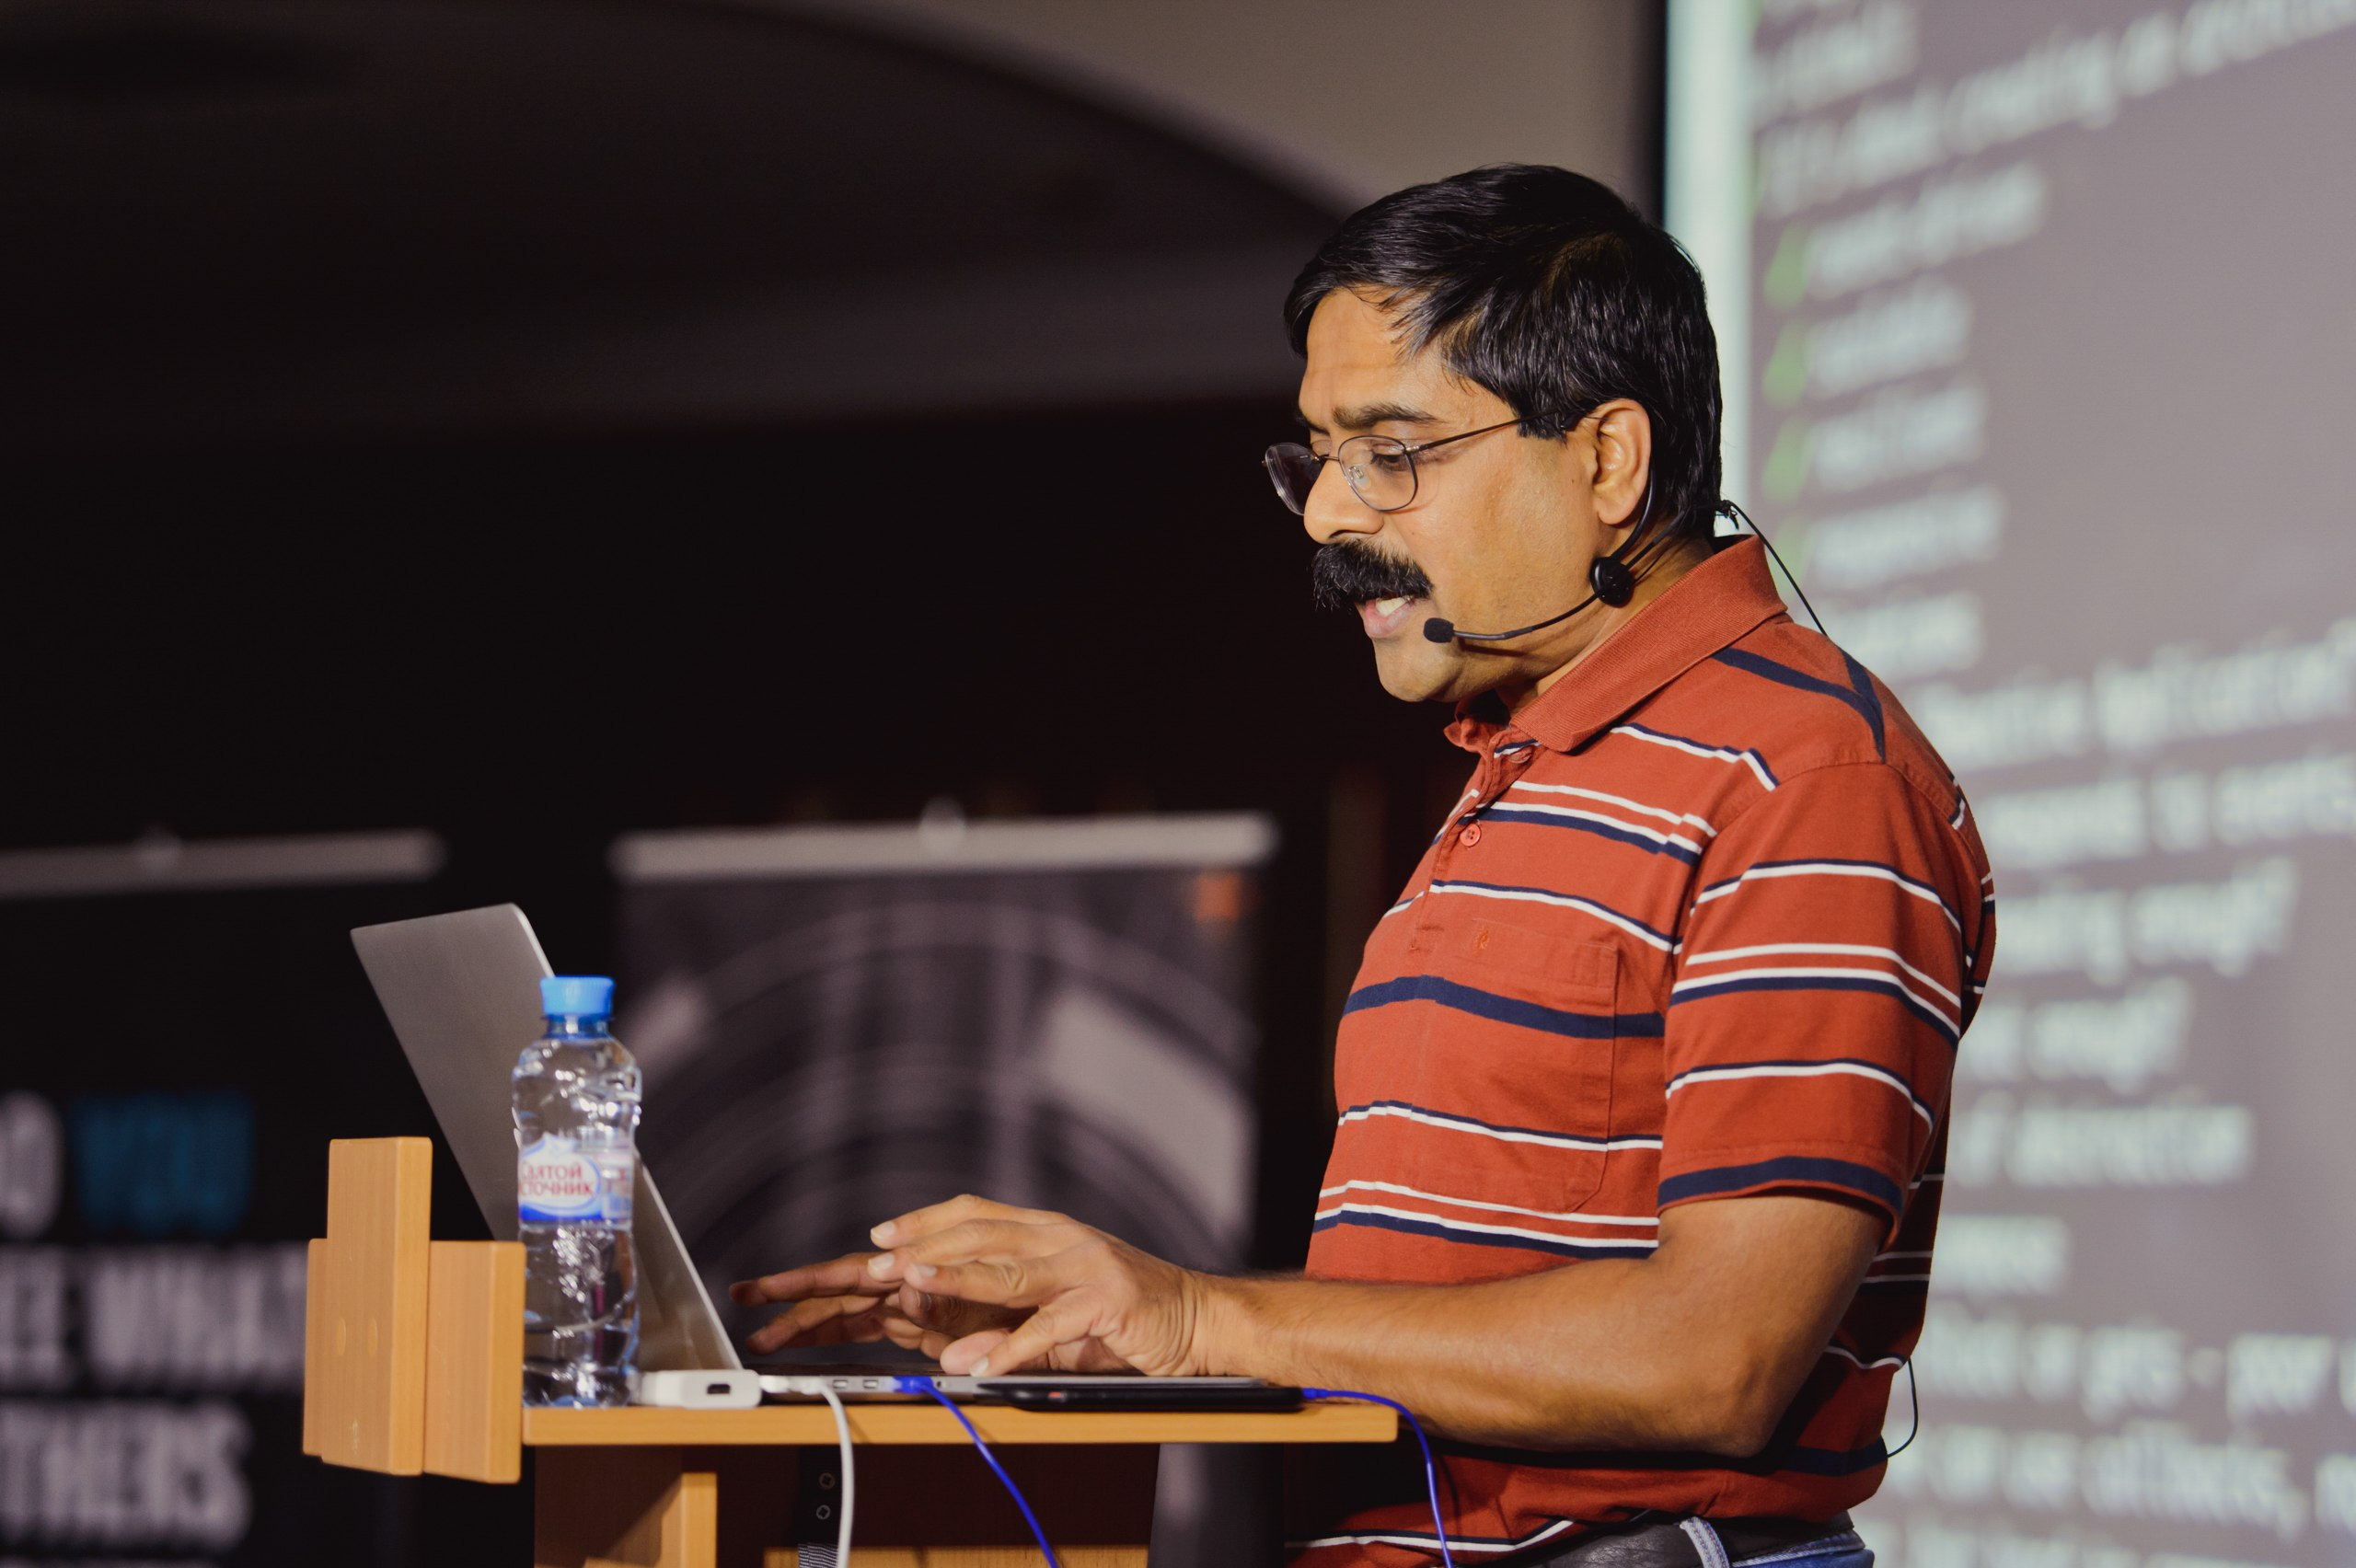 """We all aspire to complexity, and then we fight it"": an interview with Venkat Subramaniam               ""How many viewers will come to your Java report?"" It depends on whether Venkat is performing at the same time in the next room. ""           This is a joke with a fair amount of truth: in the Java world  Venkat Subramaniam  - one of the most famous speakers, so that at conferences it is really capable to draw spectators from other halls. He relentlessly moves around the planet and recently set an impressive record, to his 50th birthday in one year before 50 different Java User Groups.           What is it like, when your Java career is not ""sitting in the office"", but ""constantly moving""? And what does Venkat think about current Java issues? In October, he will reach St. Petersburg, and on the eve of this we (               ""How many viewers will come to your Java report?"" It depends on whether Venkat is performing at the same time in the next room. ""           This is a joke with a fair amount of truth: in the Java world  Venkat Subramaniam  - one of the most famous speakers, so that at conferences it is really capable to draw spectators from other halls. He relentlessly moves around the planet and recently set an impressive record, to his 50th birthday in one year before 50 different Java User Groups.           What is it like, when your Java career is not ""sitting in the office"", but ""constantly moving""? And what does Venkat think about current Java issues? In October, he will reach St. Petersburg, and on the eve of this we ("